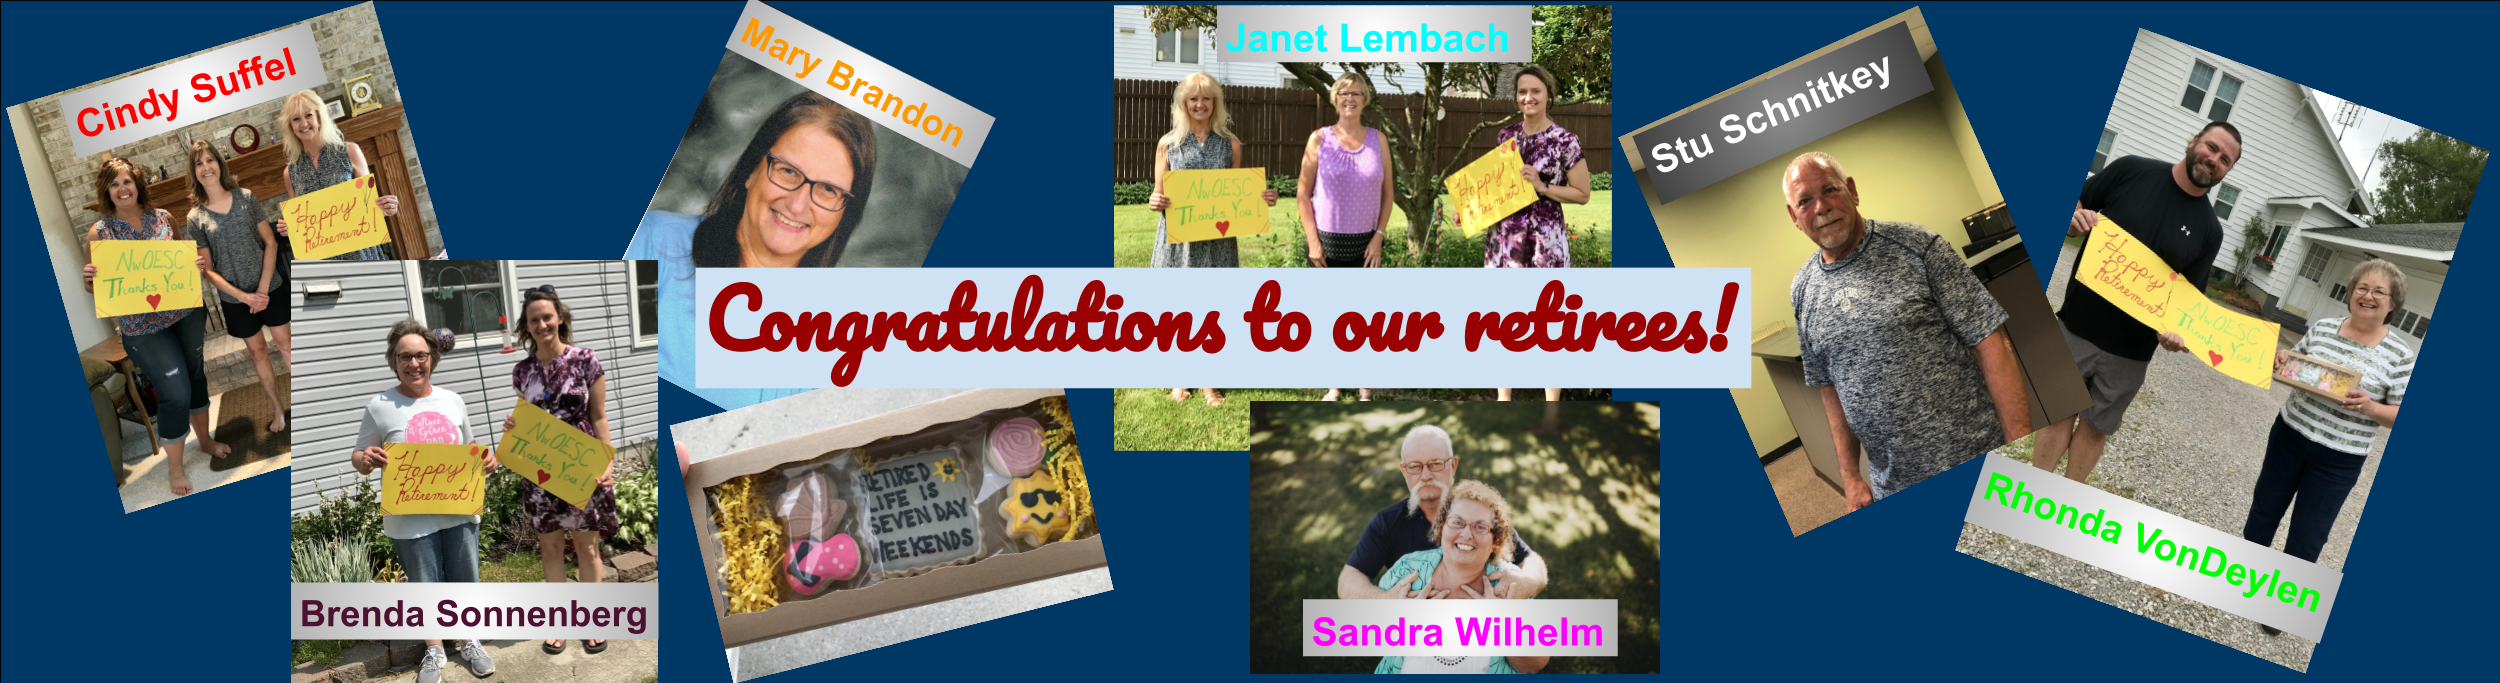 Congratulations to our retirees!